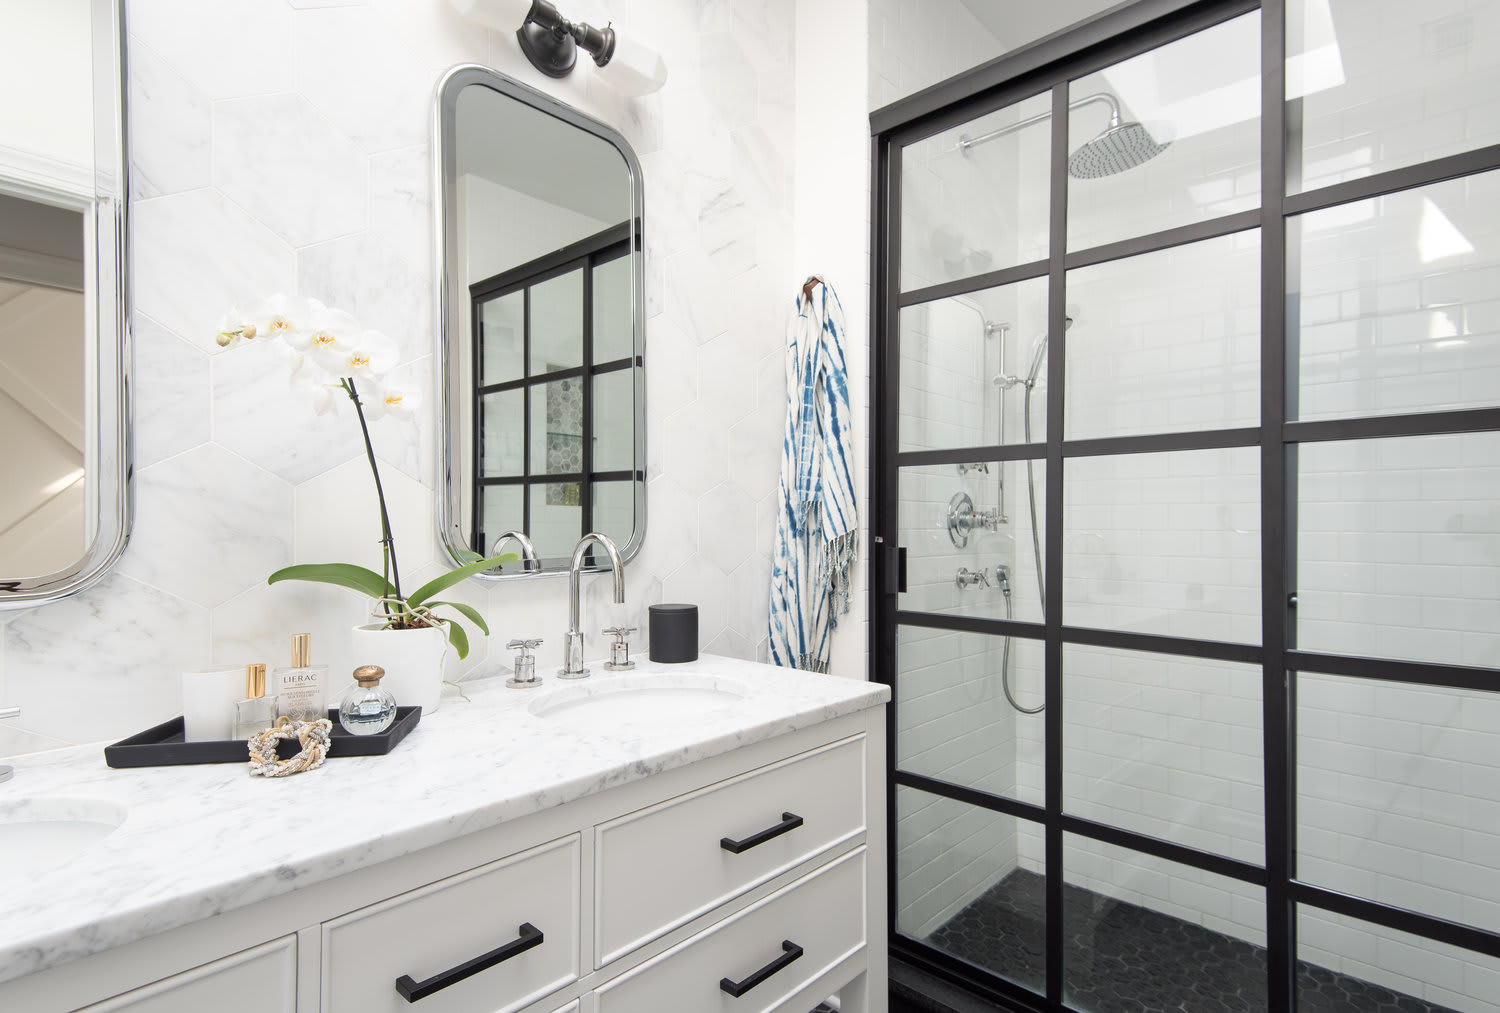 Interior Design by Kerra Michele Interiors seen at Private Residence, Washington - T Street Rowhouse